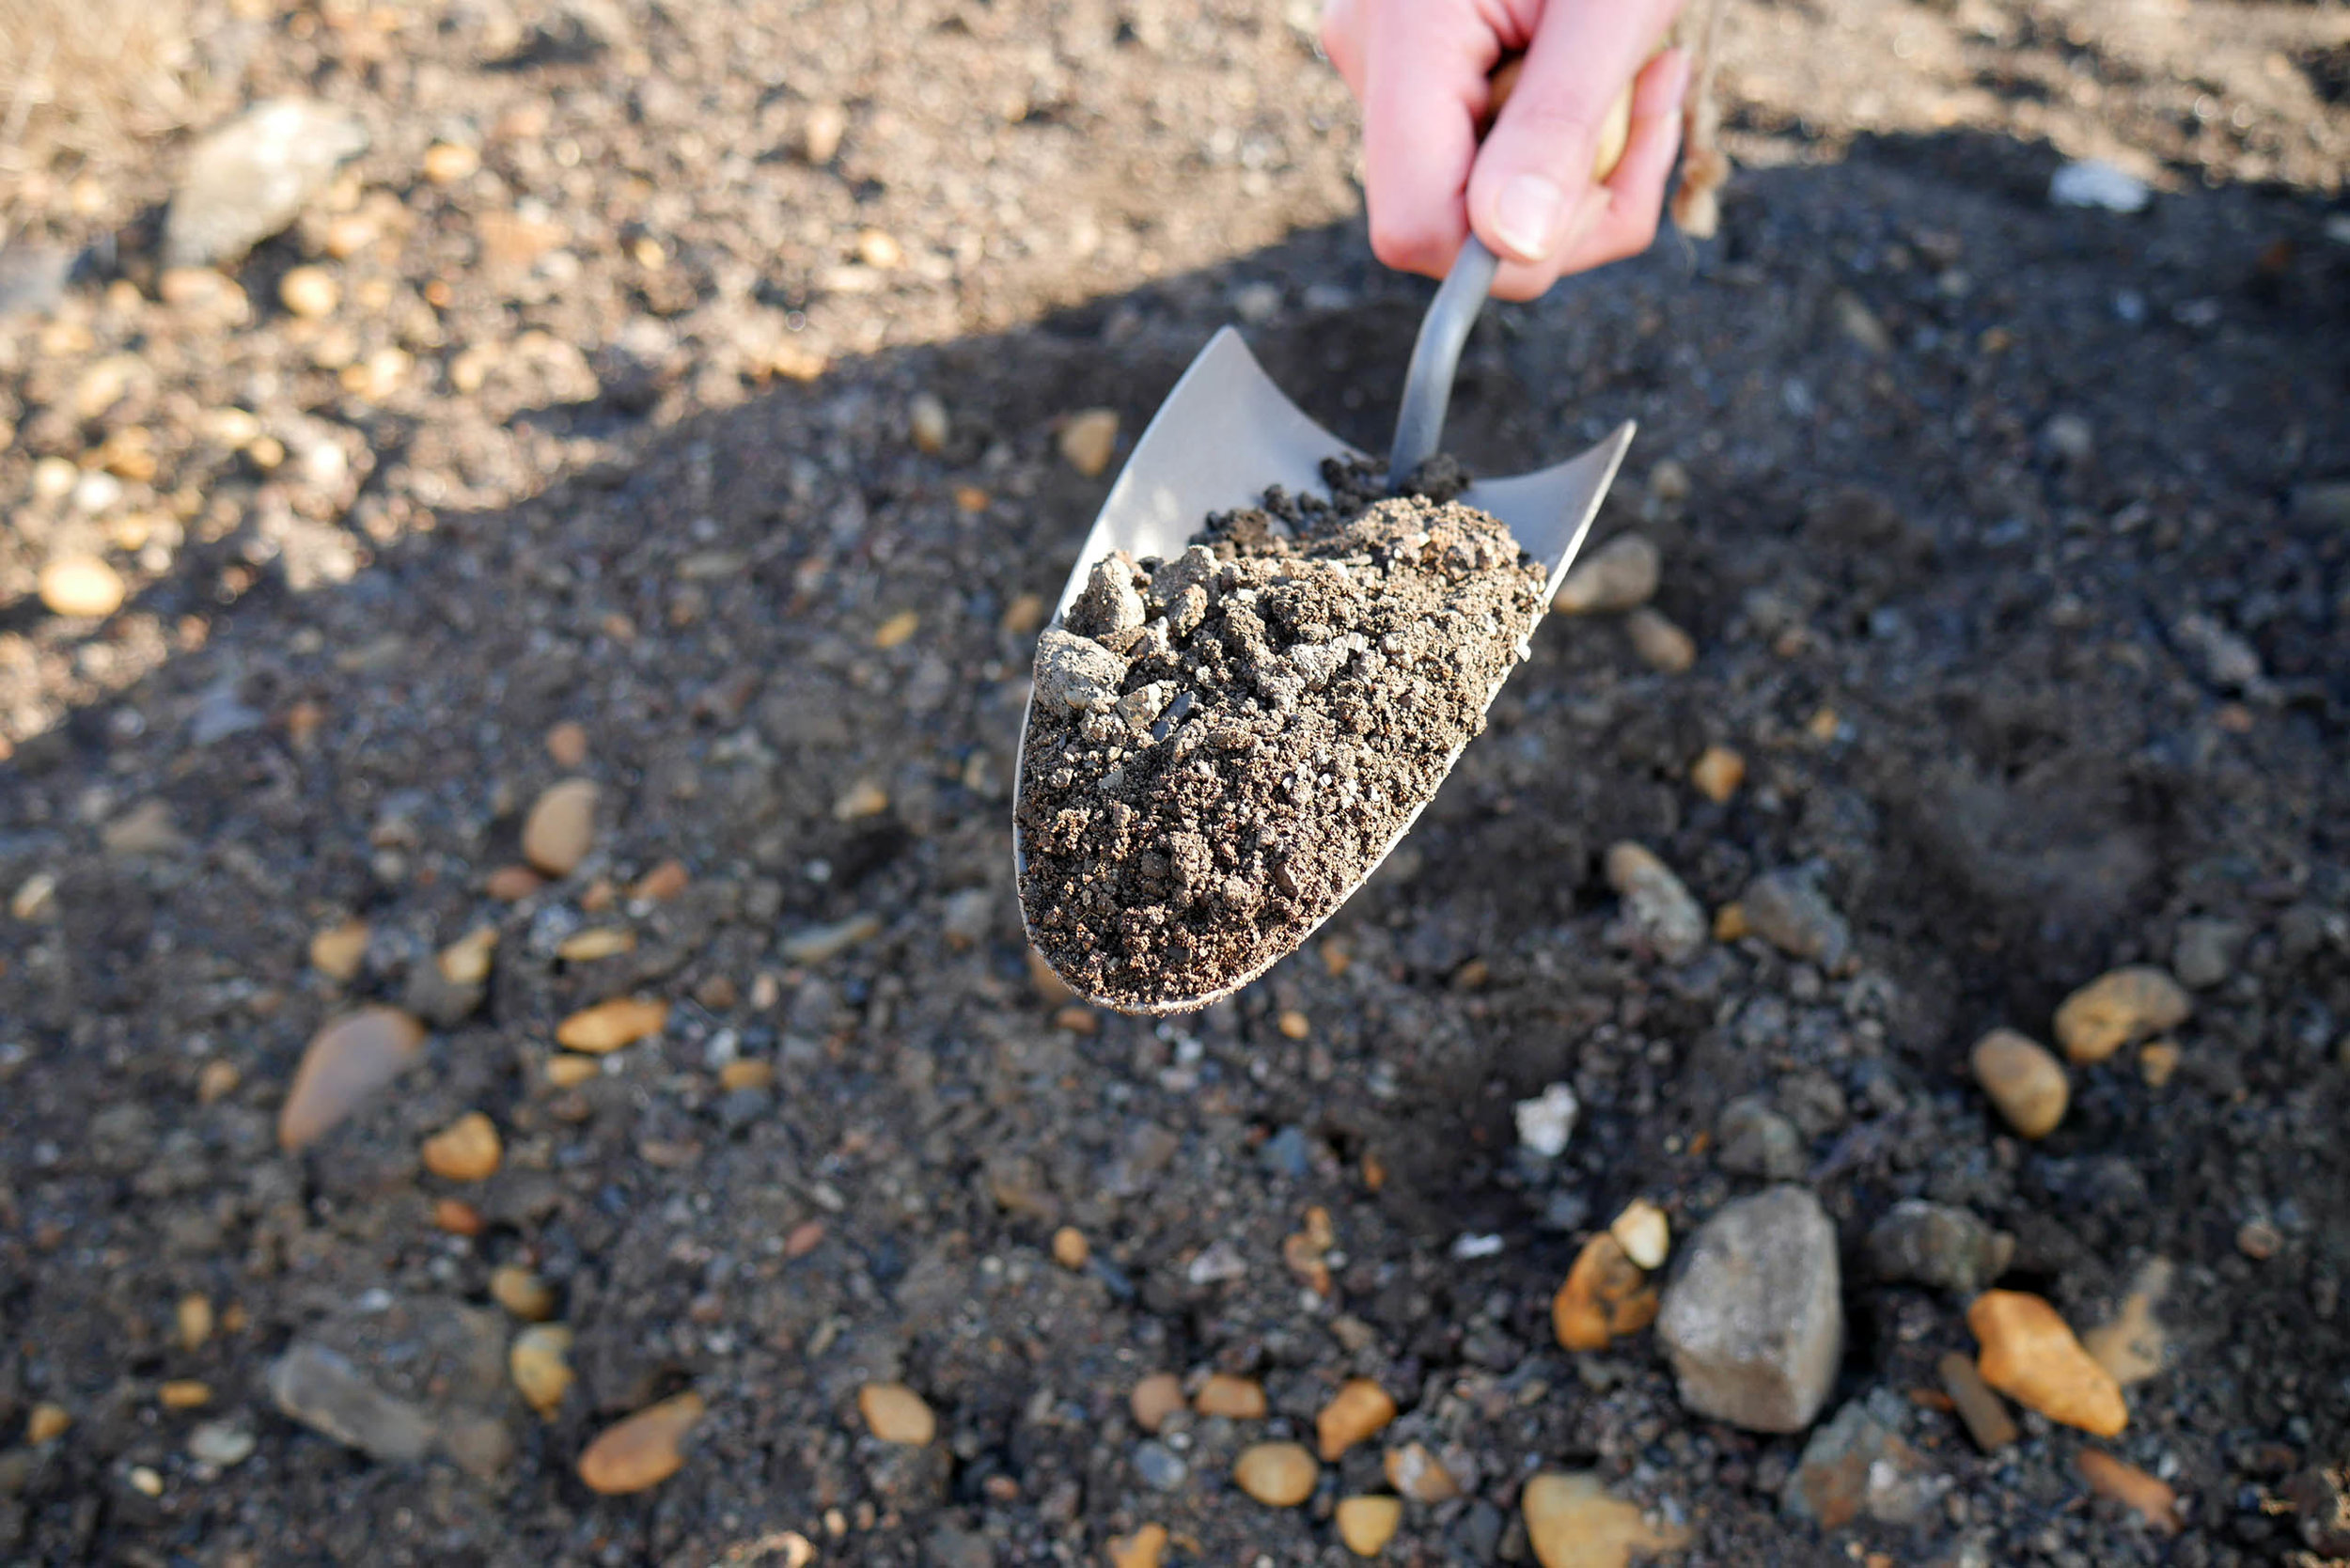 Collecting polluted soil samples near a Zinc factory in South Holland,  Ignorance is Bliss , by Agne Kucerenkaite